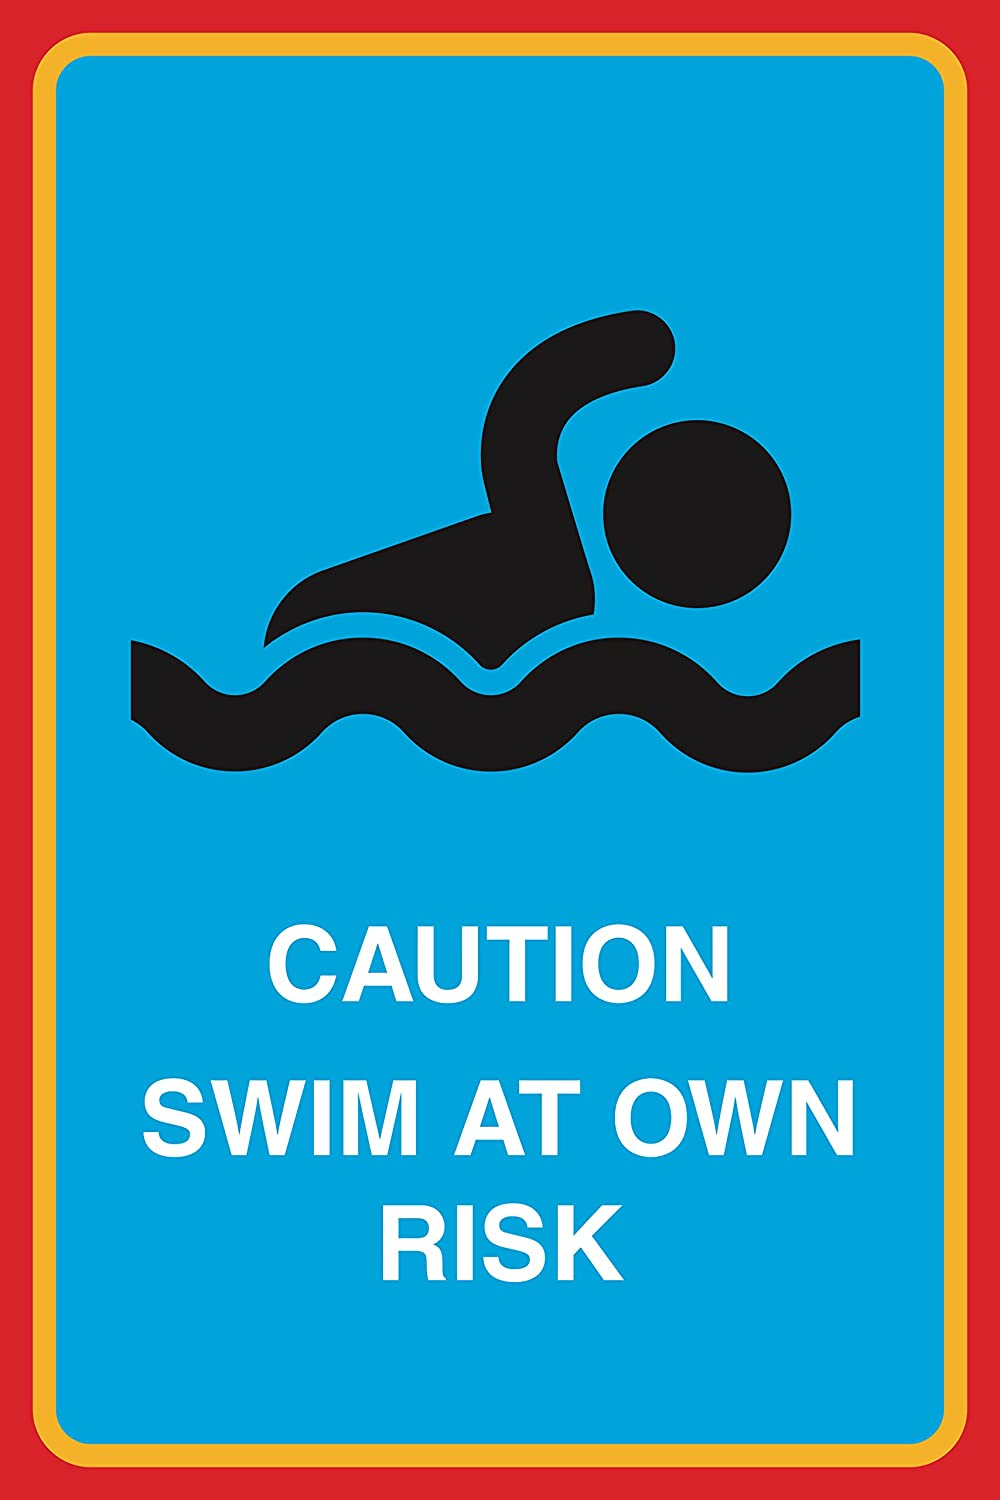 Caution Swim at Own Risk Print Person Swimming Picture Pool Beach Water Safety Sign